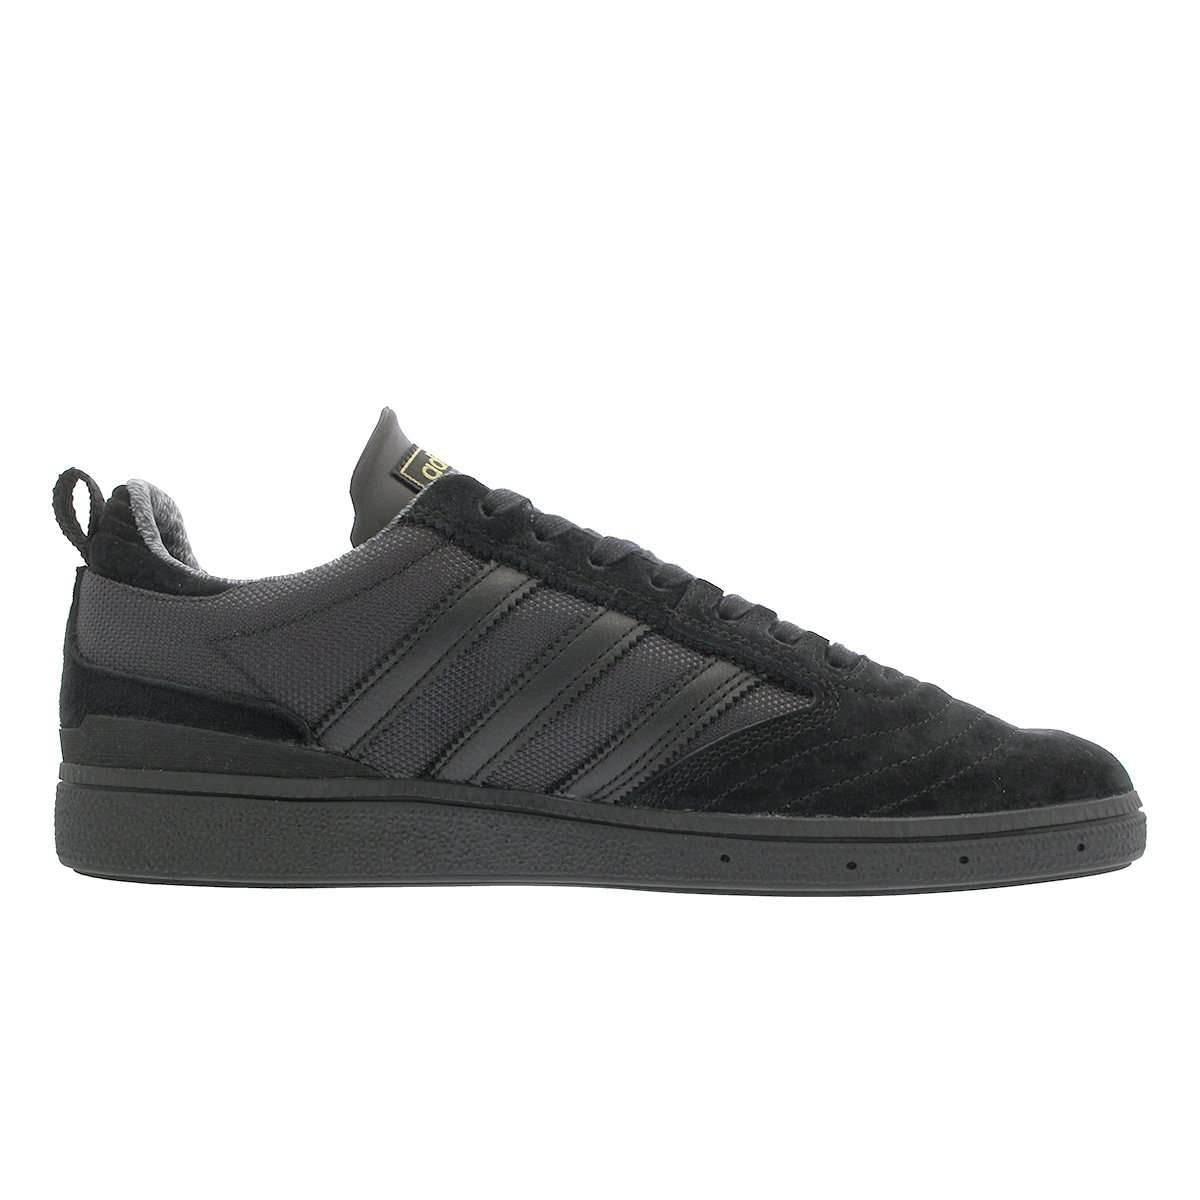 5fd1cfb6f87 adidas Busenitz Pro GORE-TEX Shoes – League Outfitters